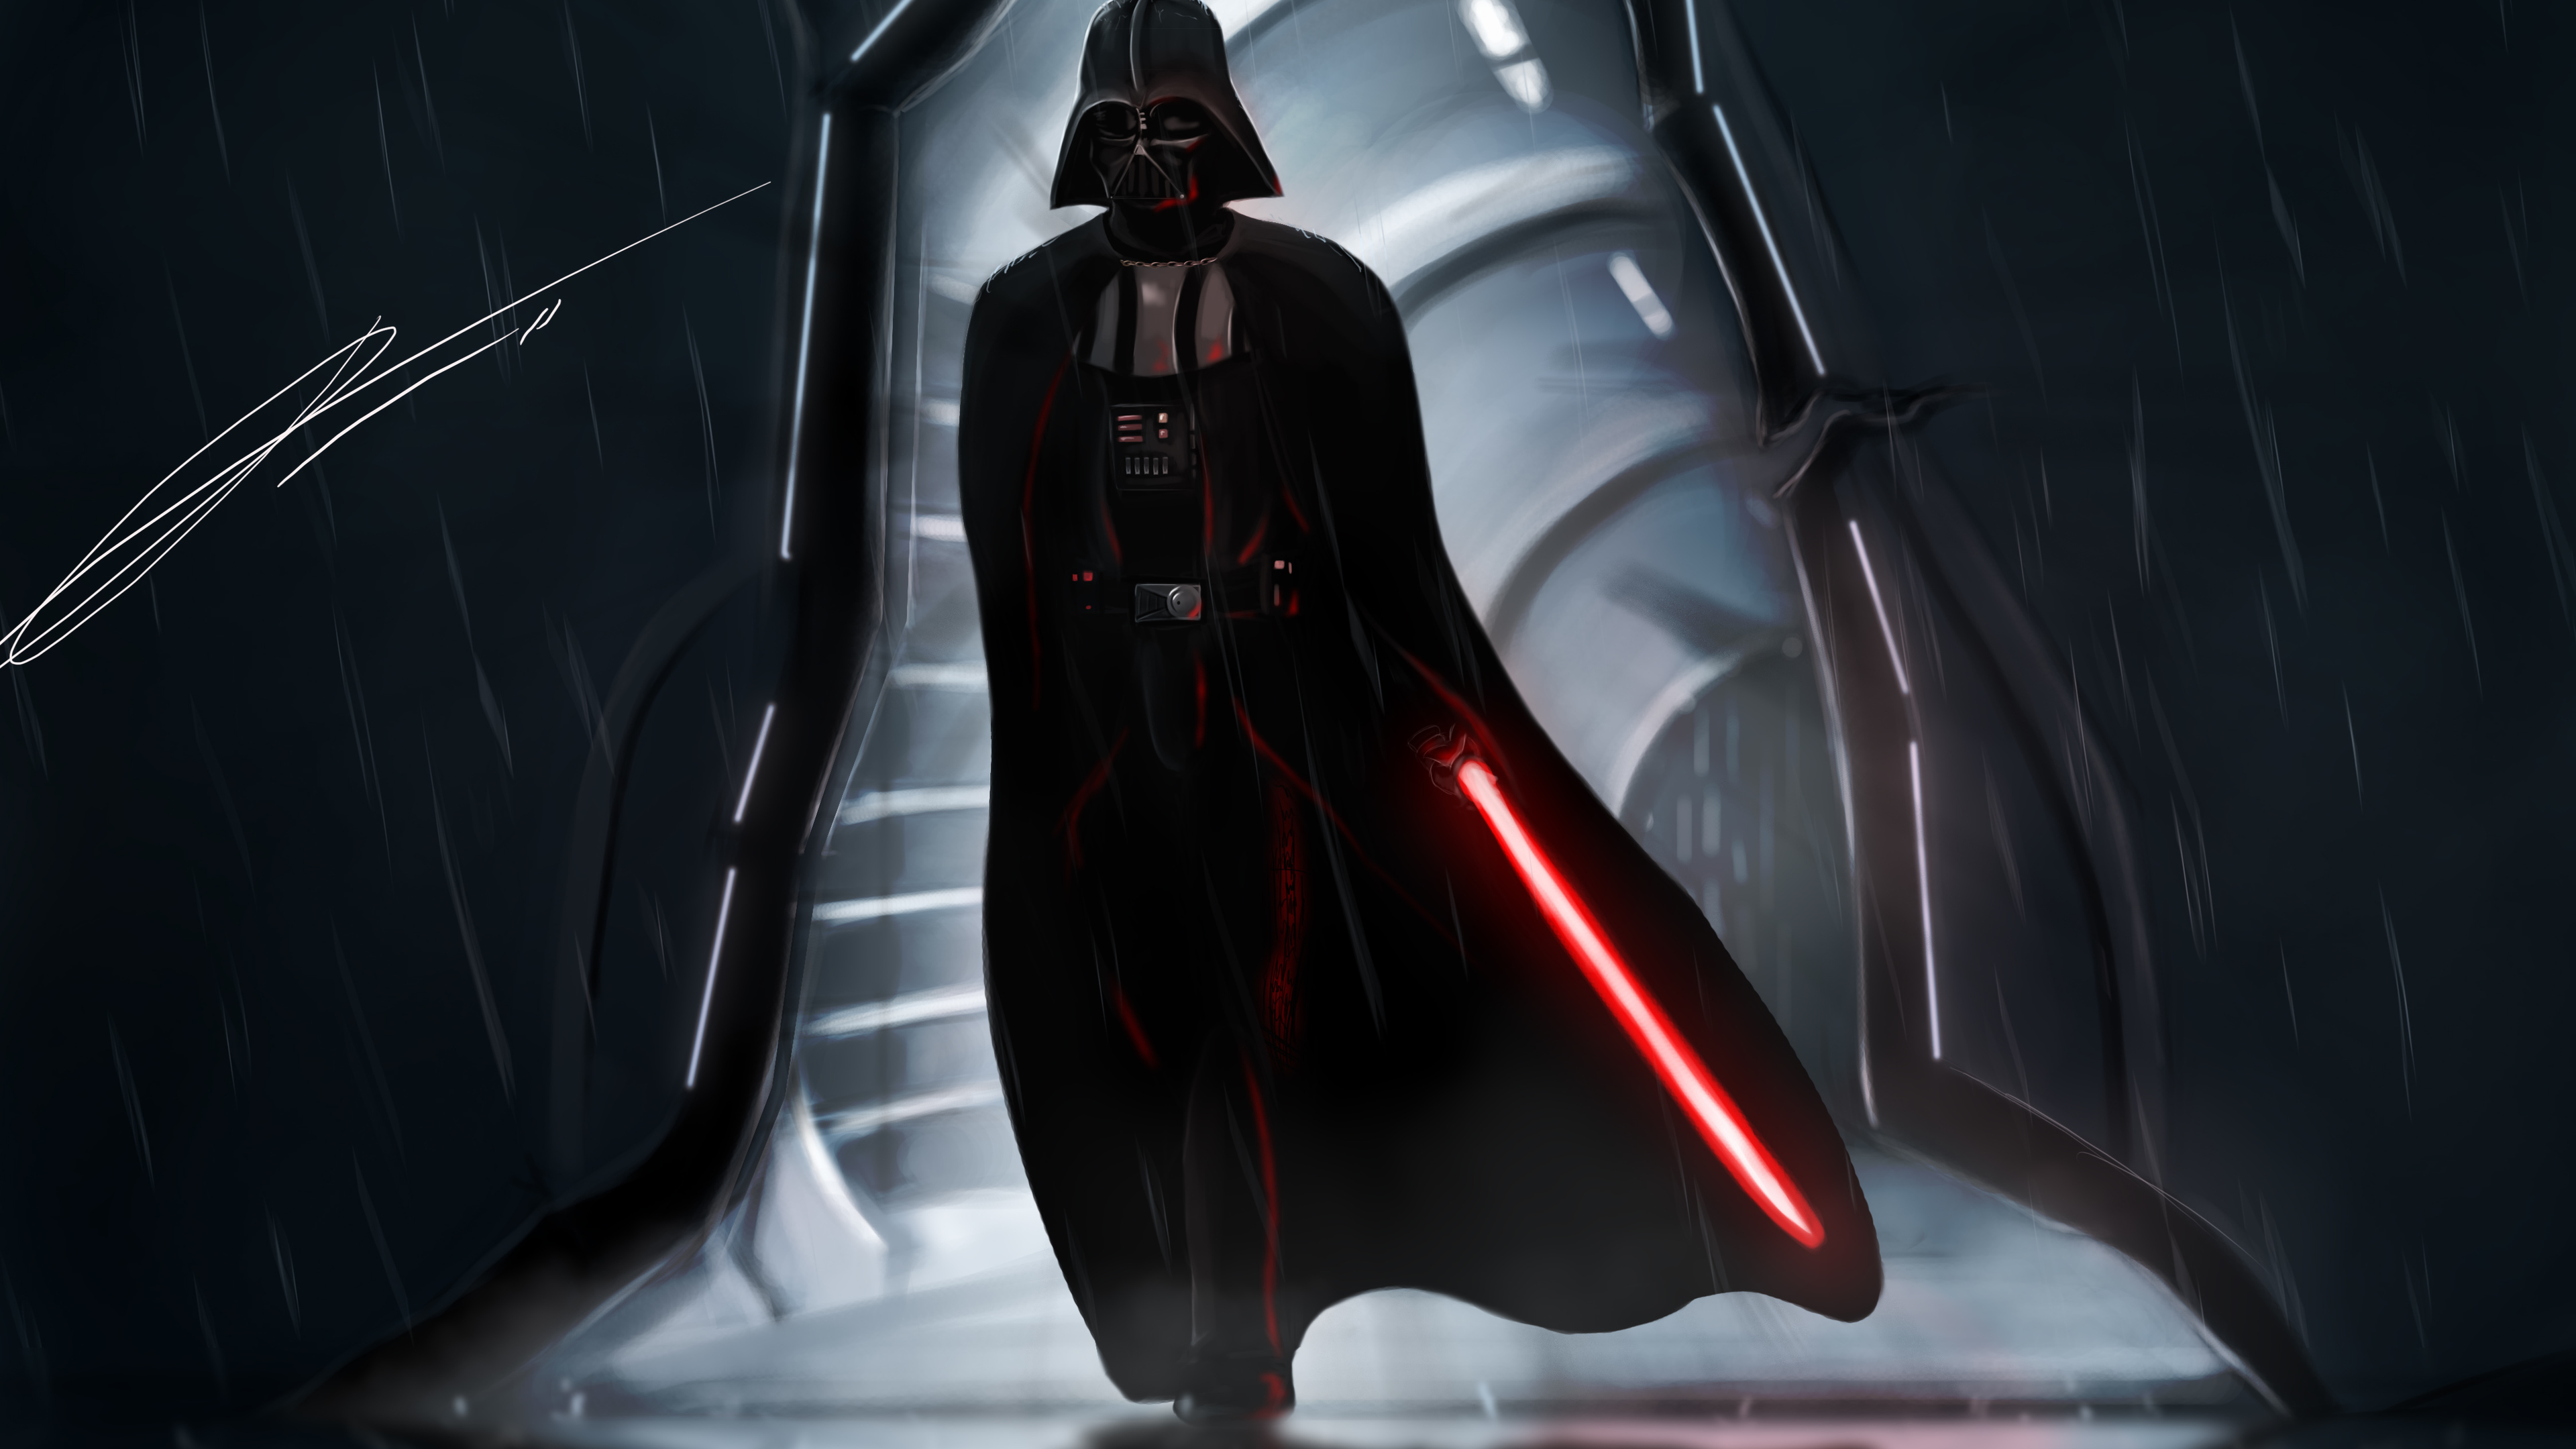 Wallpaper 4k Lord Vader 4k 4k Wallpapers Artwork Wallpapers Darth